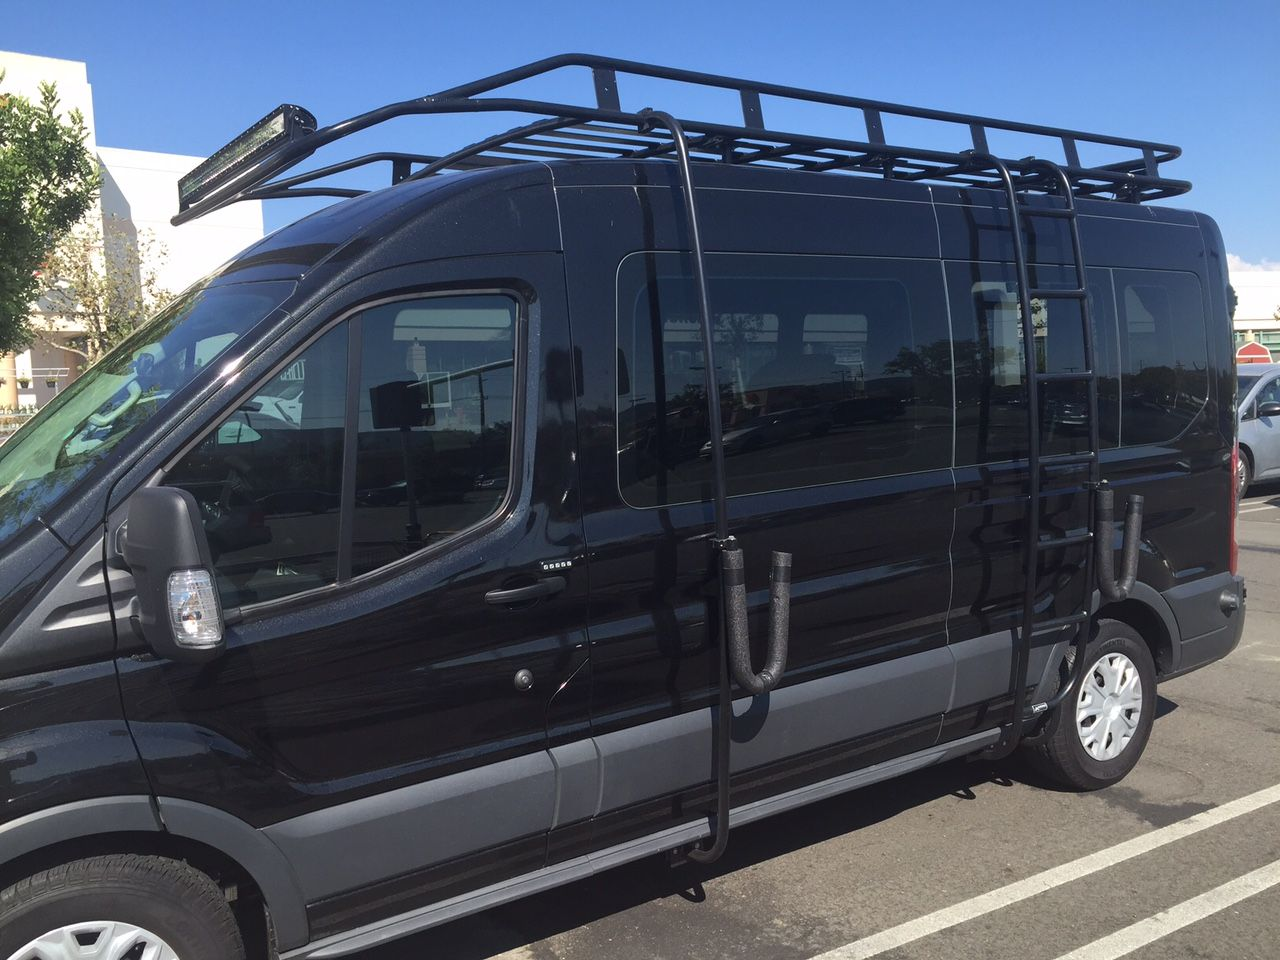 Aluminess roof rack ladder and surfboard hooks installed on a new ford transit